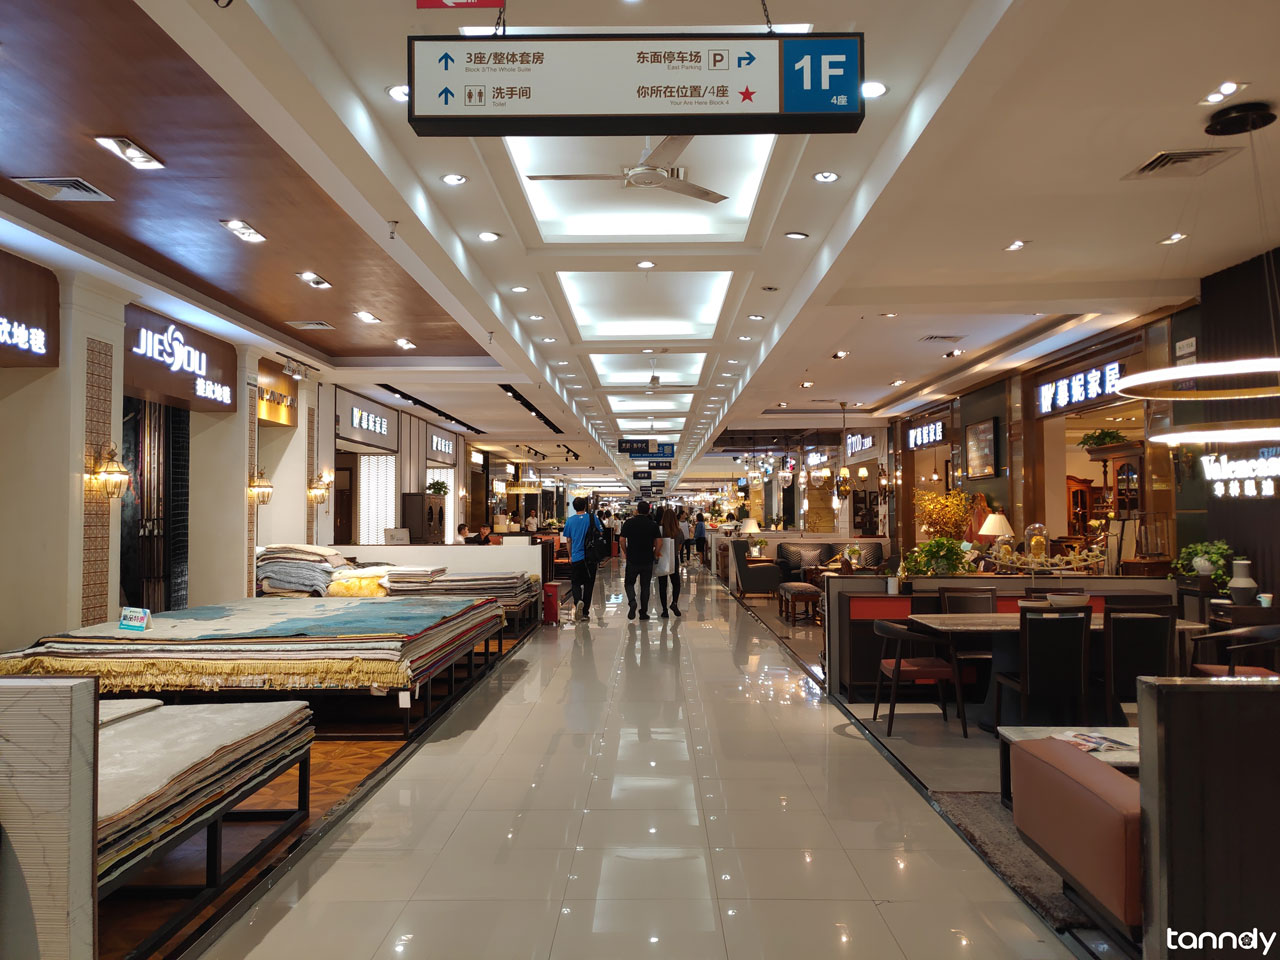 Sunlink Furniture City North Section